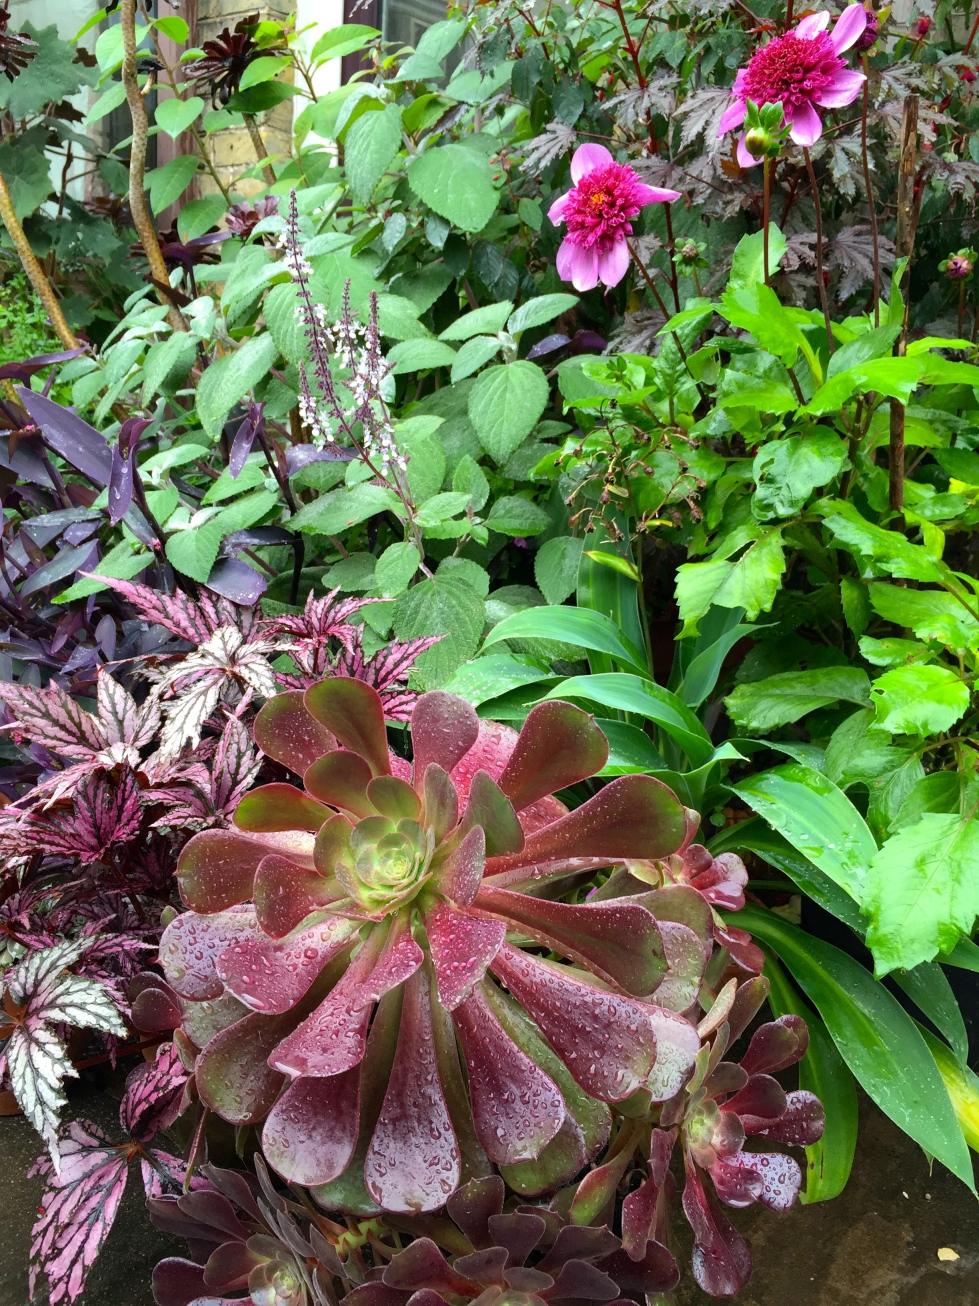 In the foreground, Aeonium 'Velour' which started out as a plant no bigger than the palm of my hand